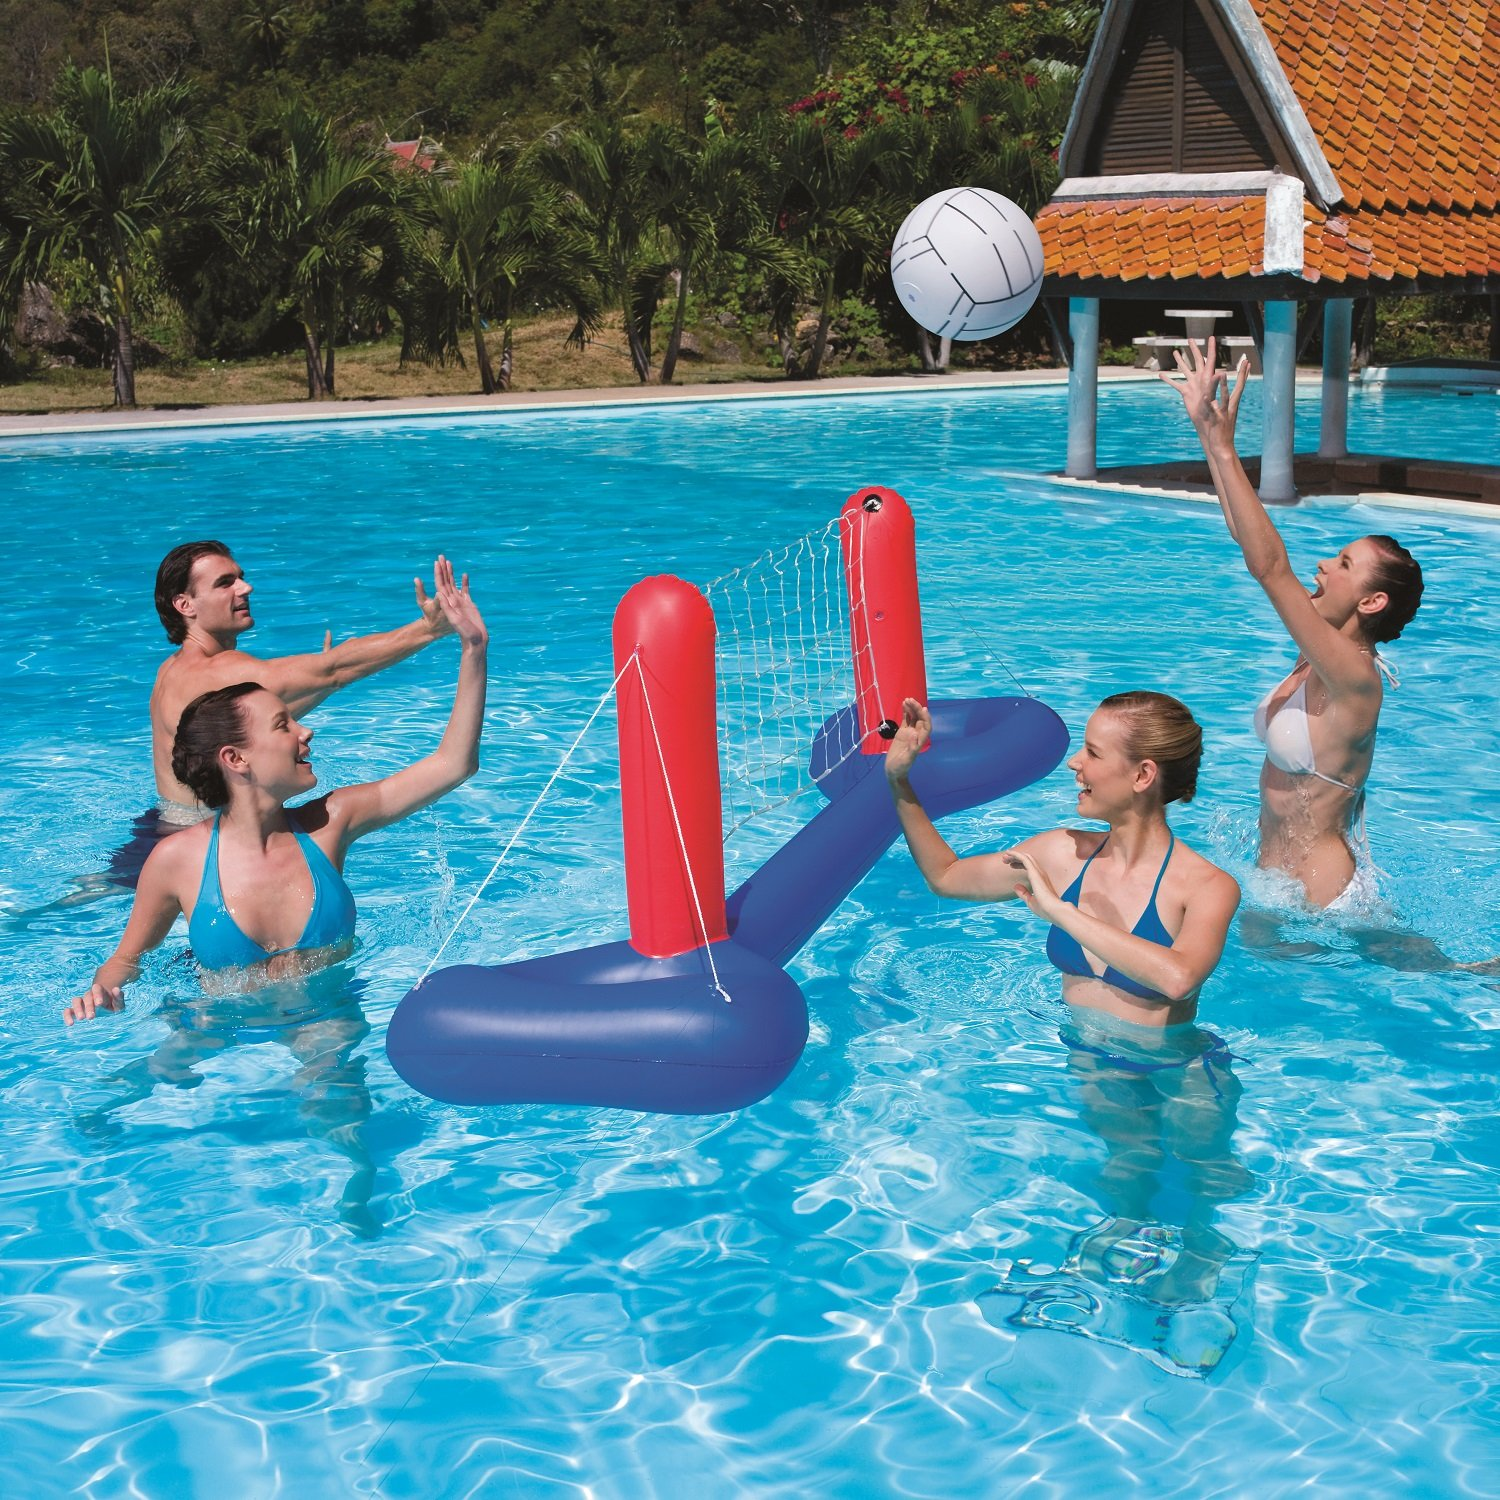 Details about Inflatable Cross Inground Swimming Pool Fun Volleyball Nylon  Net Game Water Set